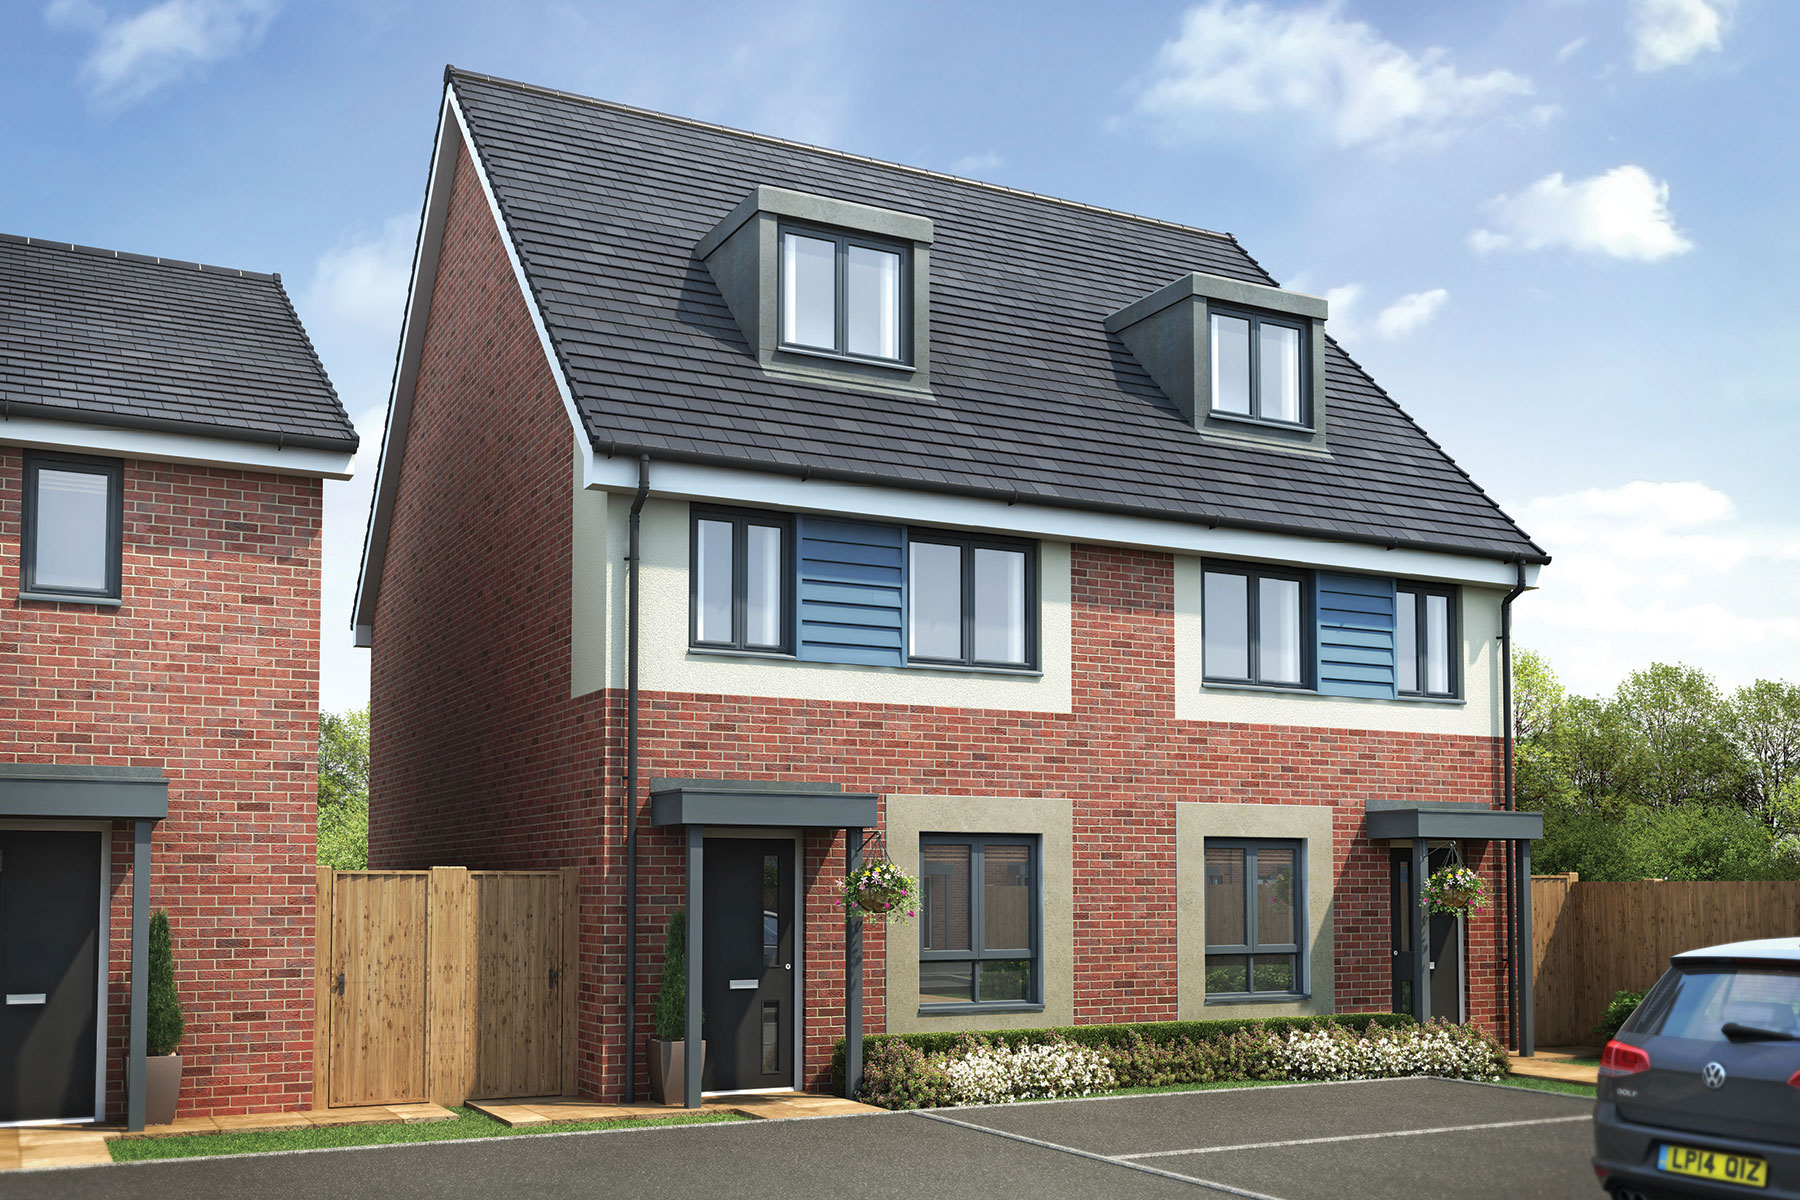 Taylor wimpey house types with pictures